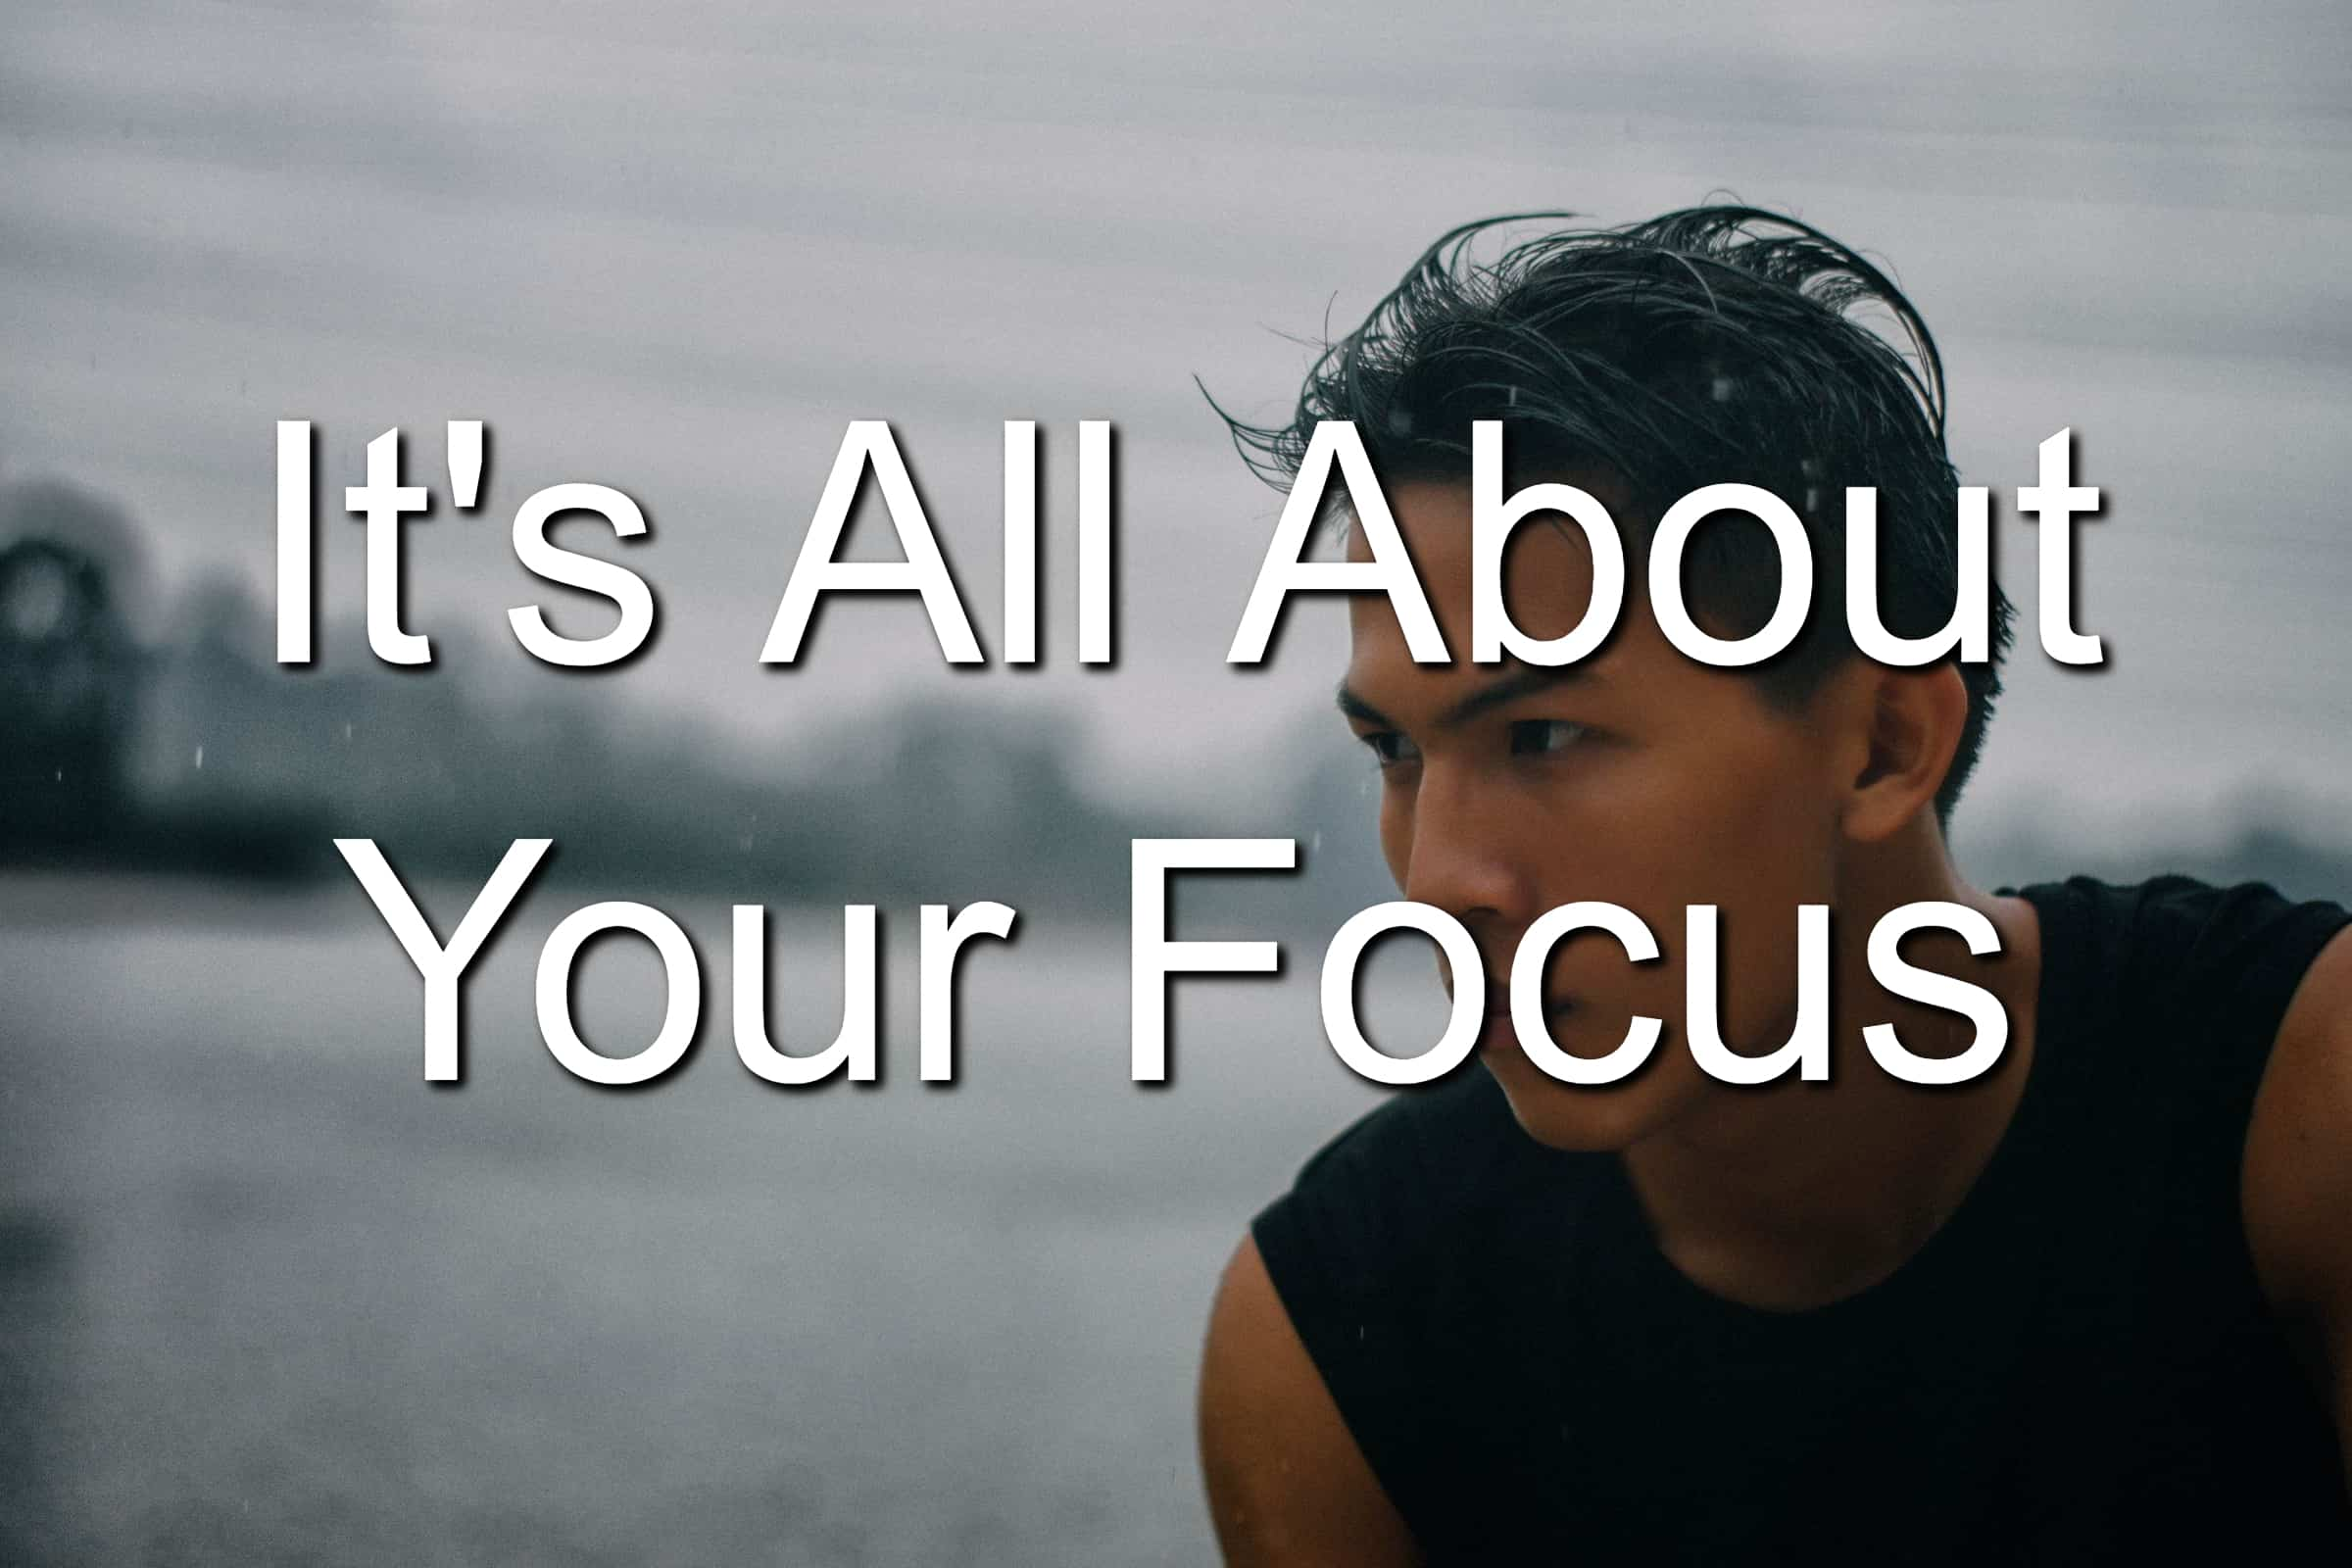 Focus on the right things and you can become a disciplined leader